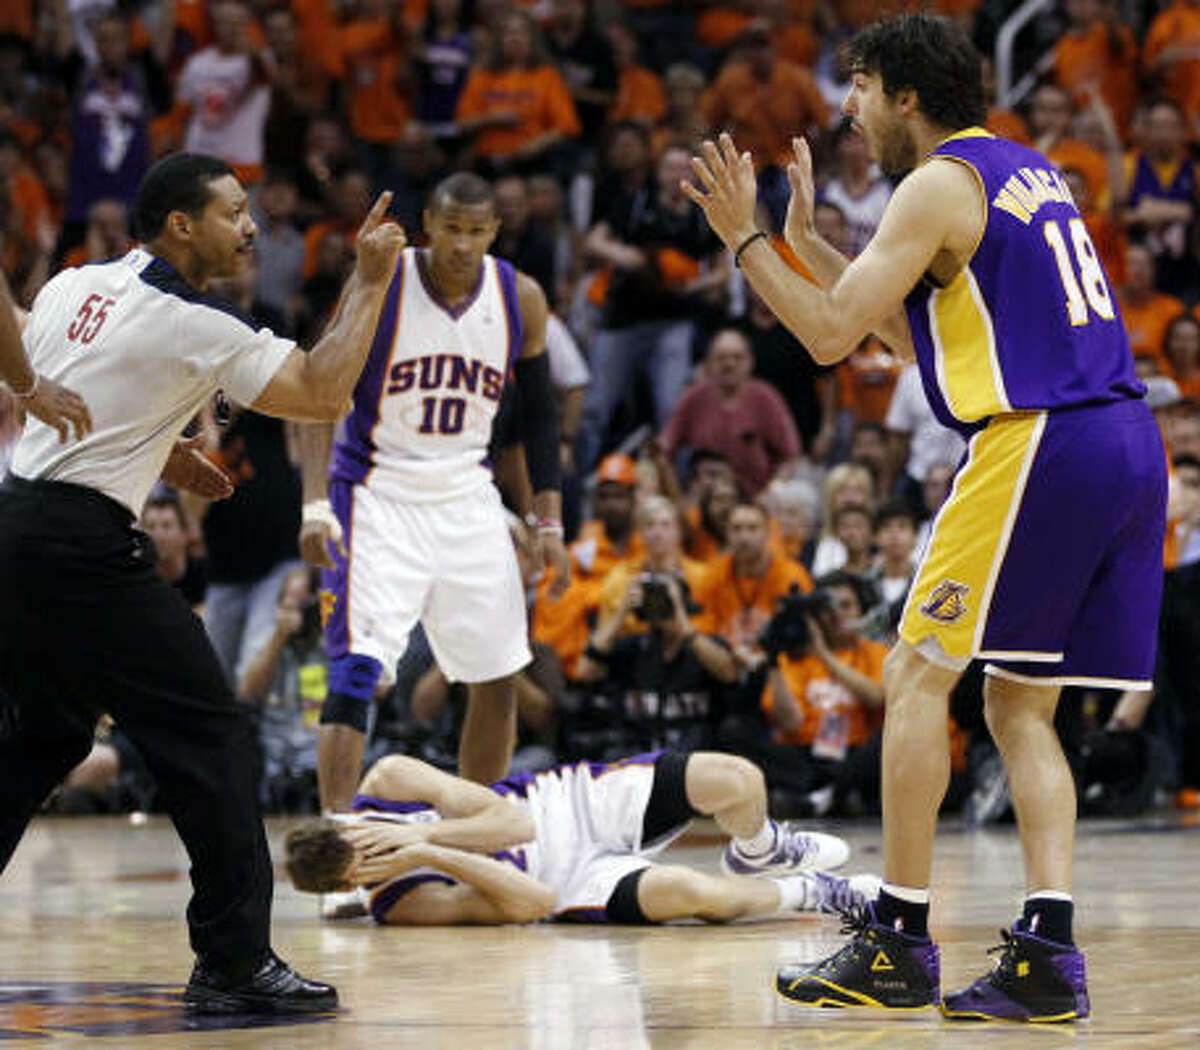 Referee Bill Kennedy, left, calls Lakers guard Sasha Vujacic, right, for a flagrant foul against Suns guard Goran Dragic, bottom, in the second half.